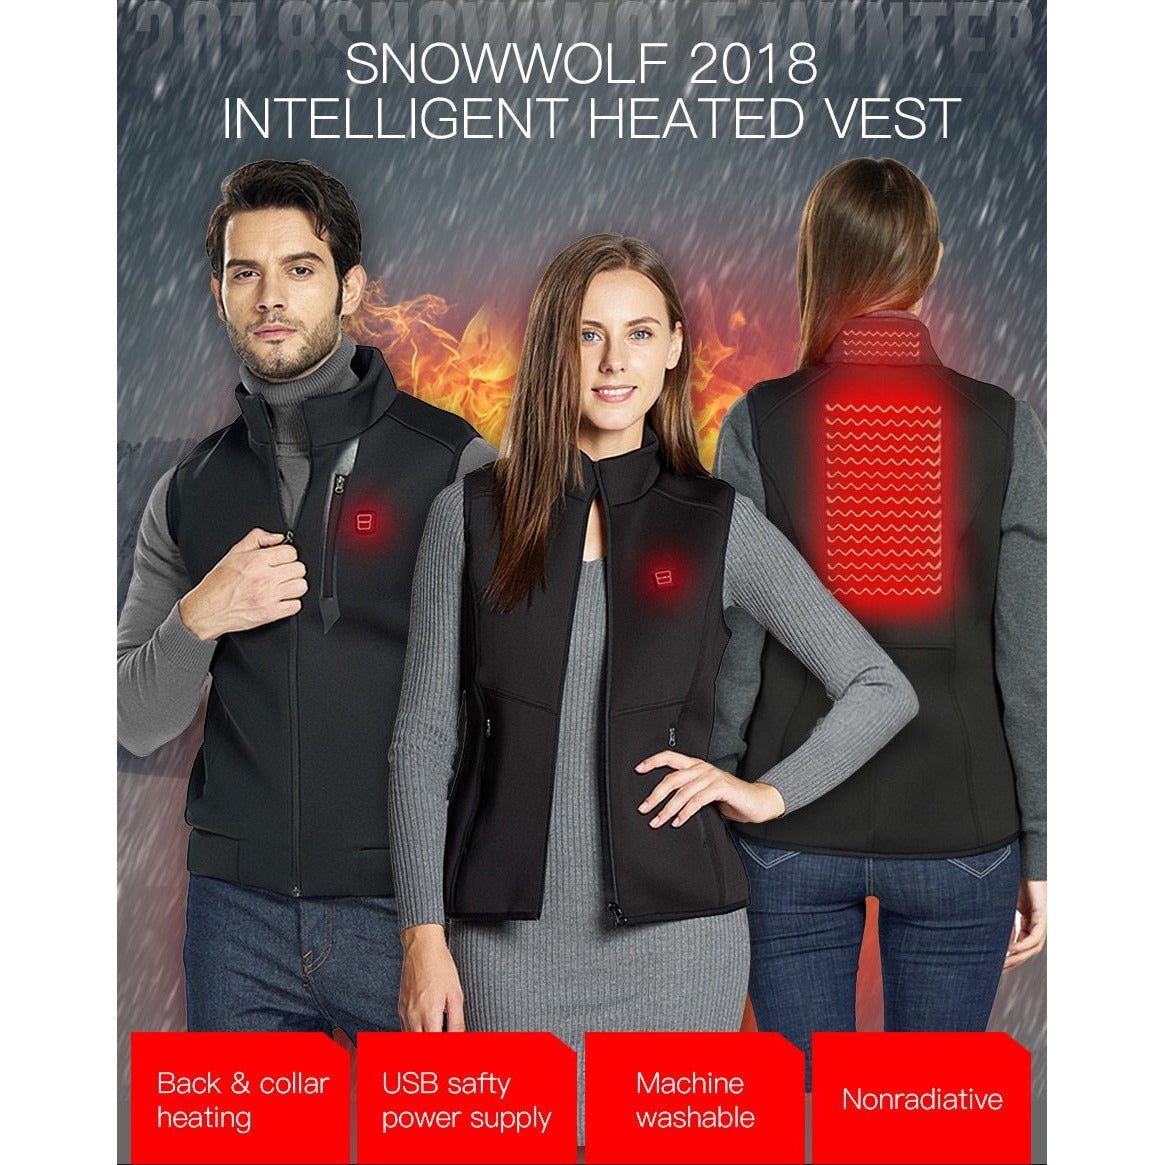 USB Infrared Heating Vest (120-Day Money Back Guarantee)